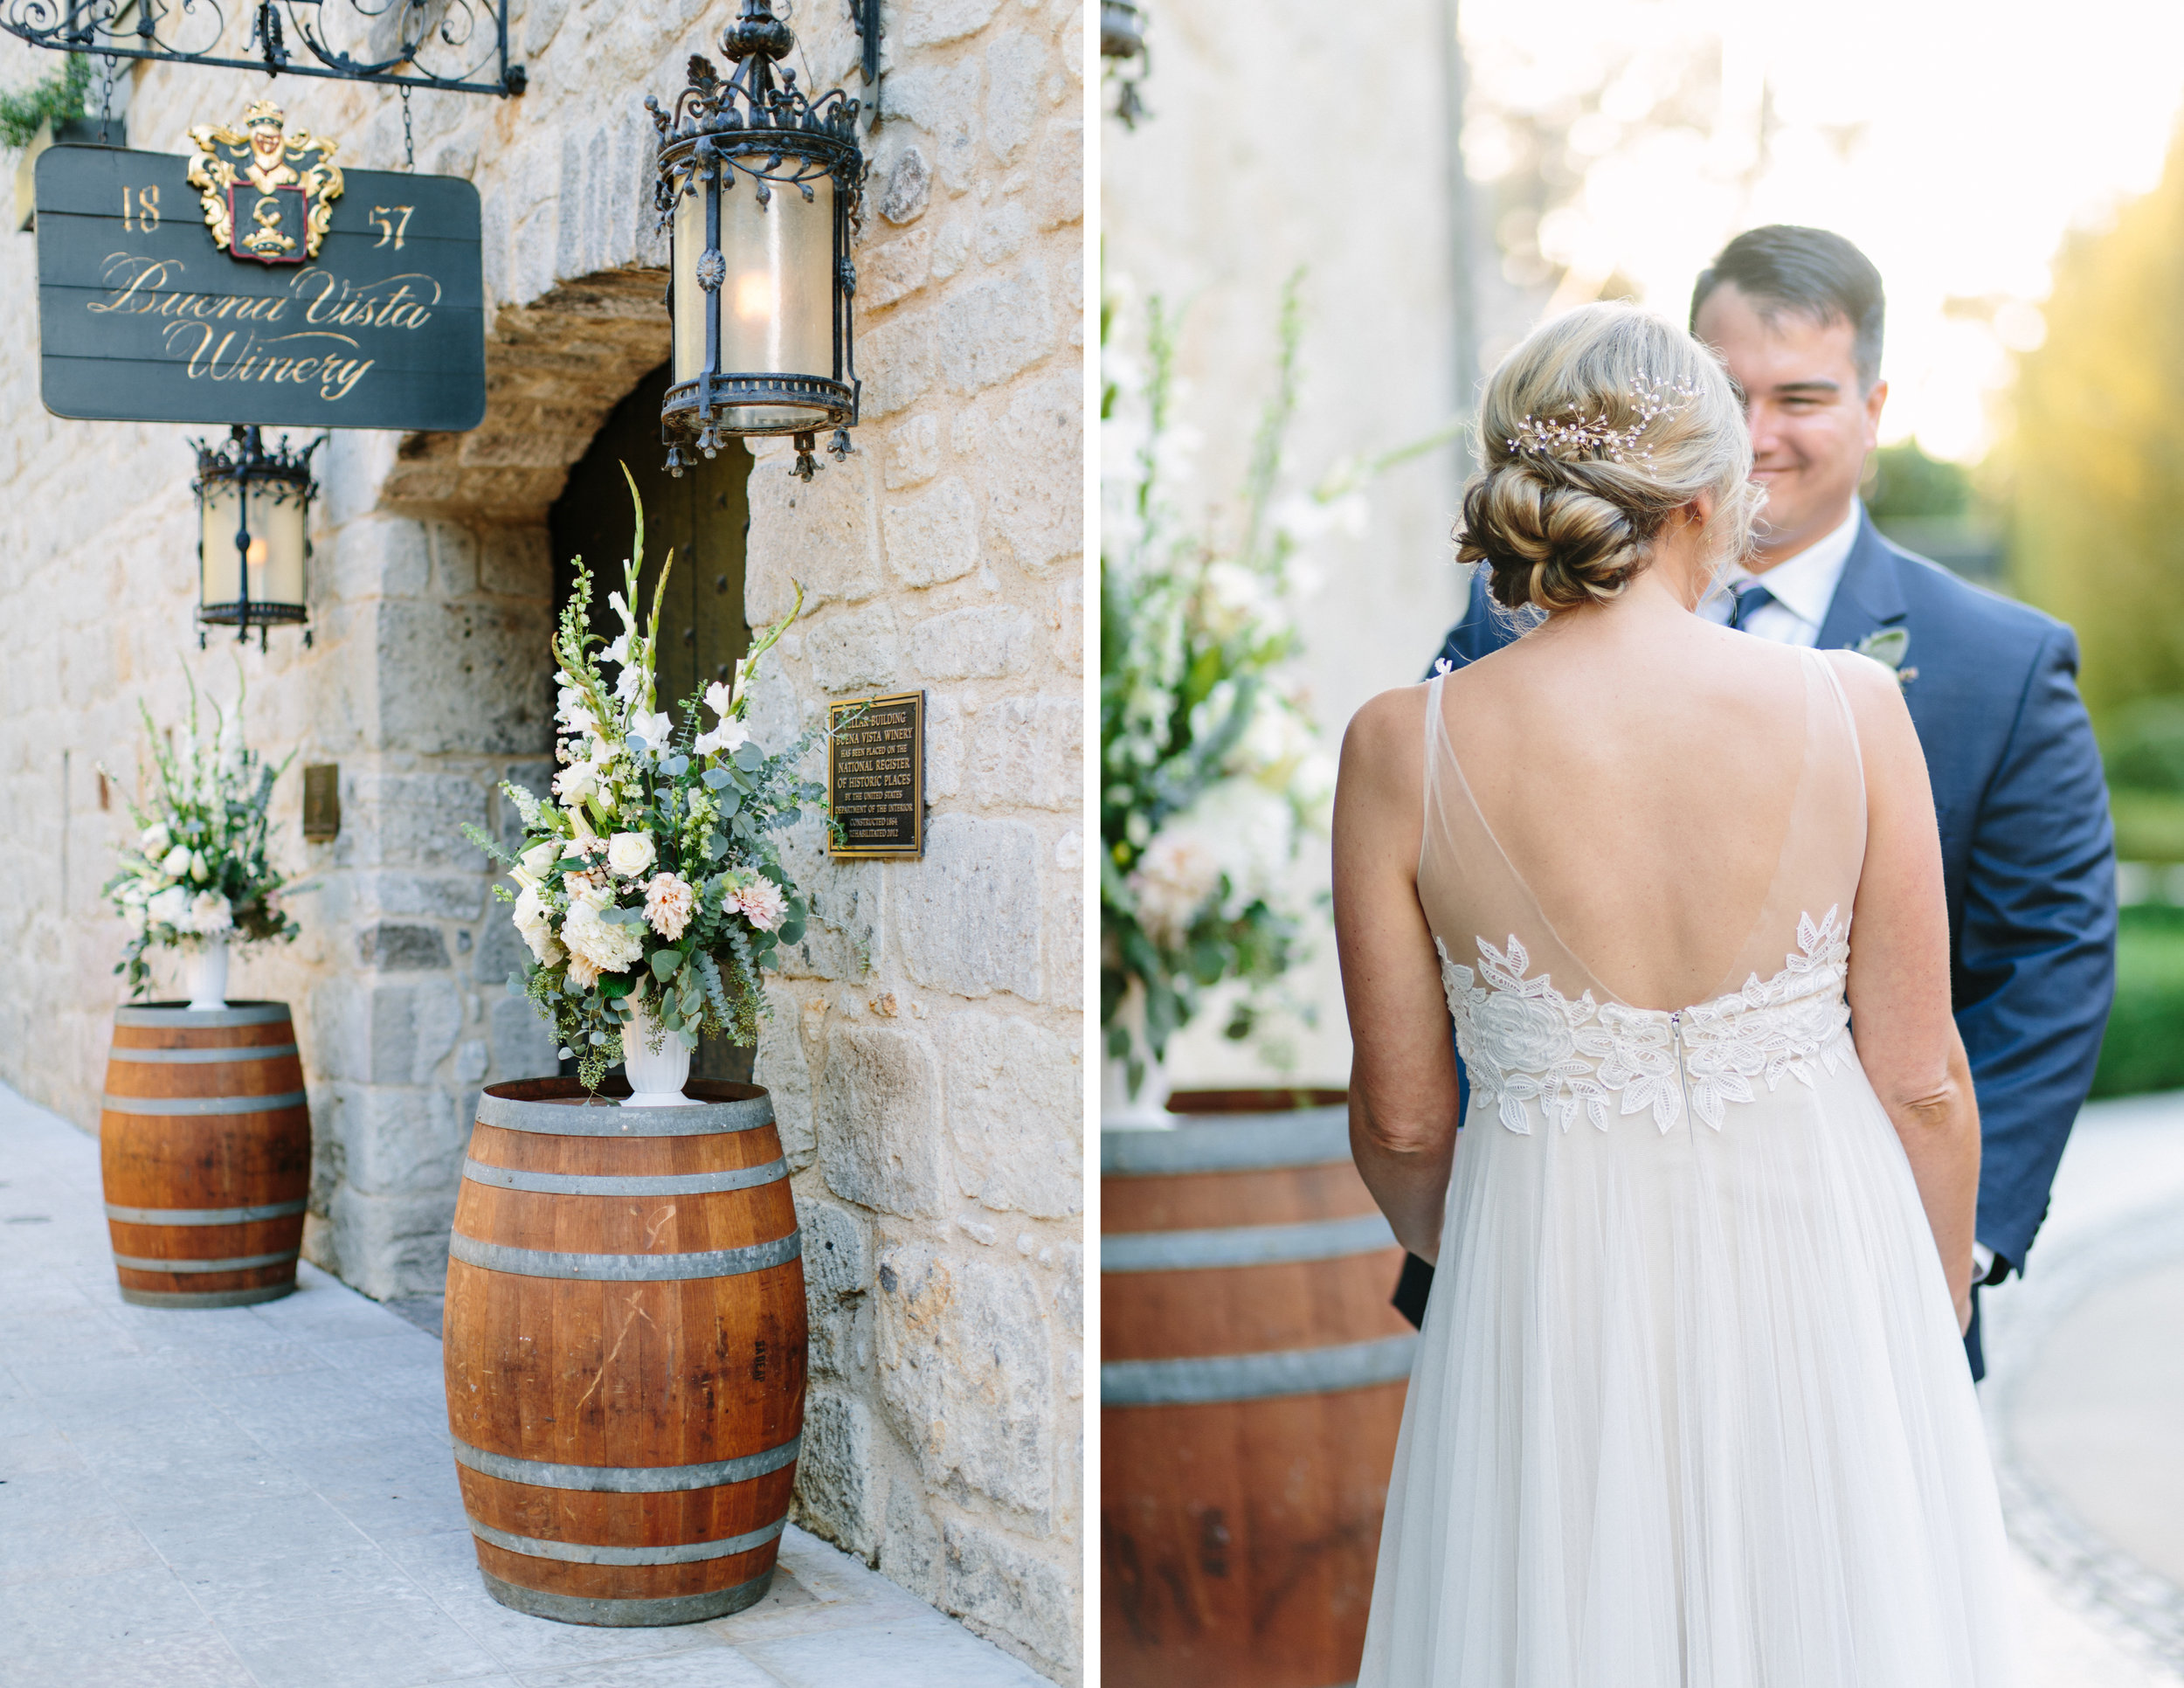 buena vista winery wedding 4.jpg